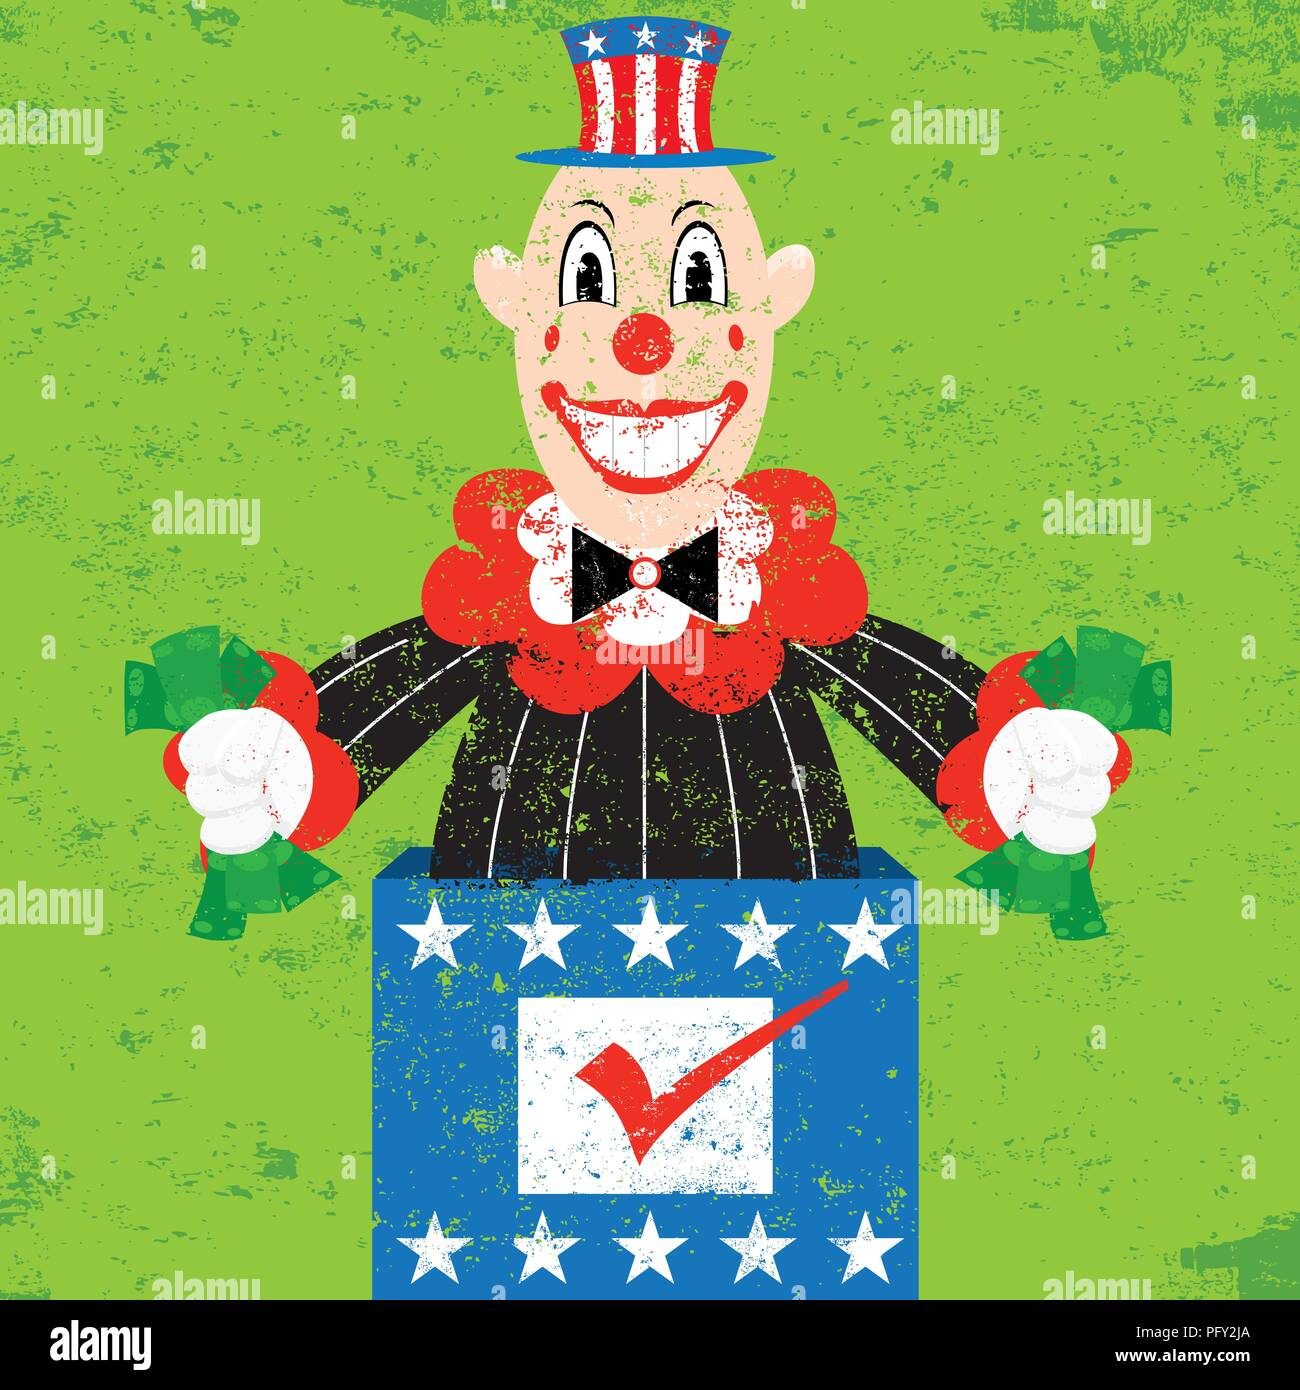 Politician in the Box. A cash grabbing Politician-in-the-Box popping out of a ballot box over an abstract background. - Stock Vector